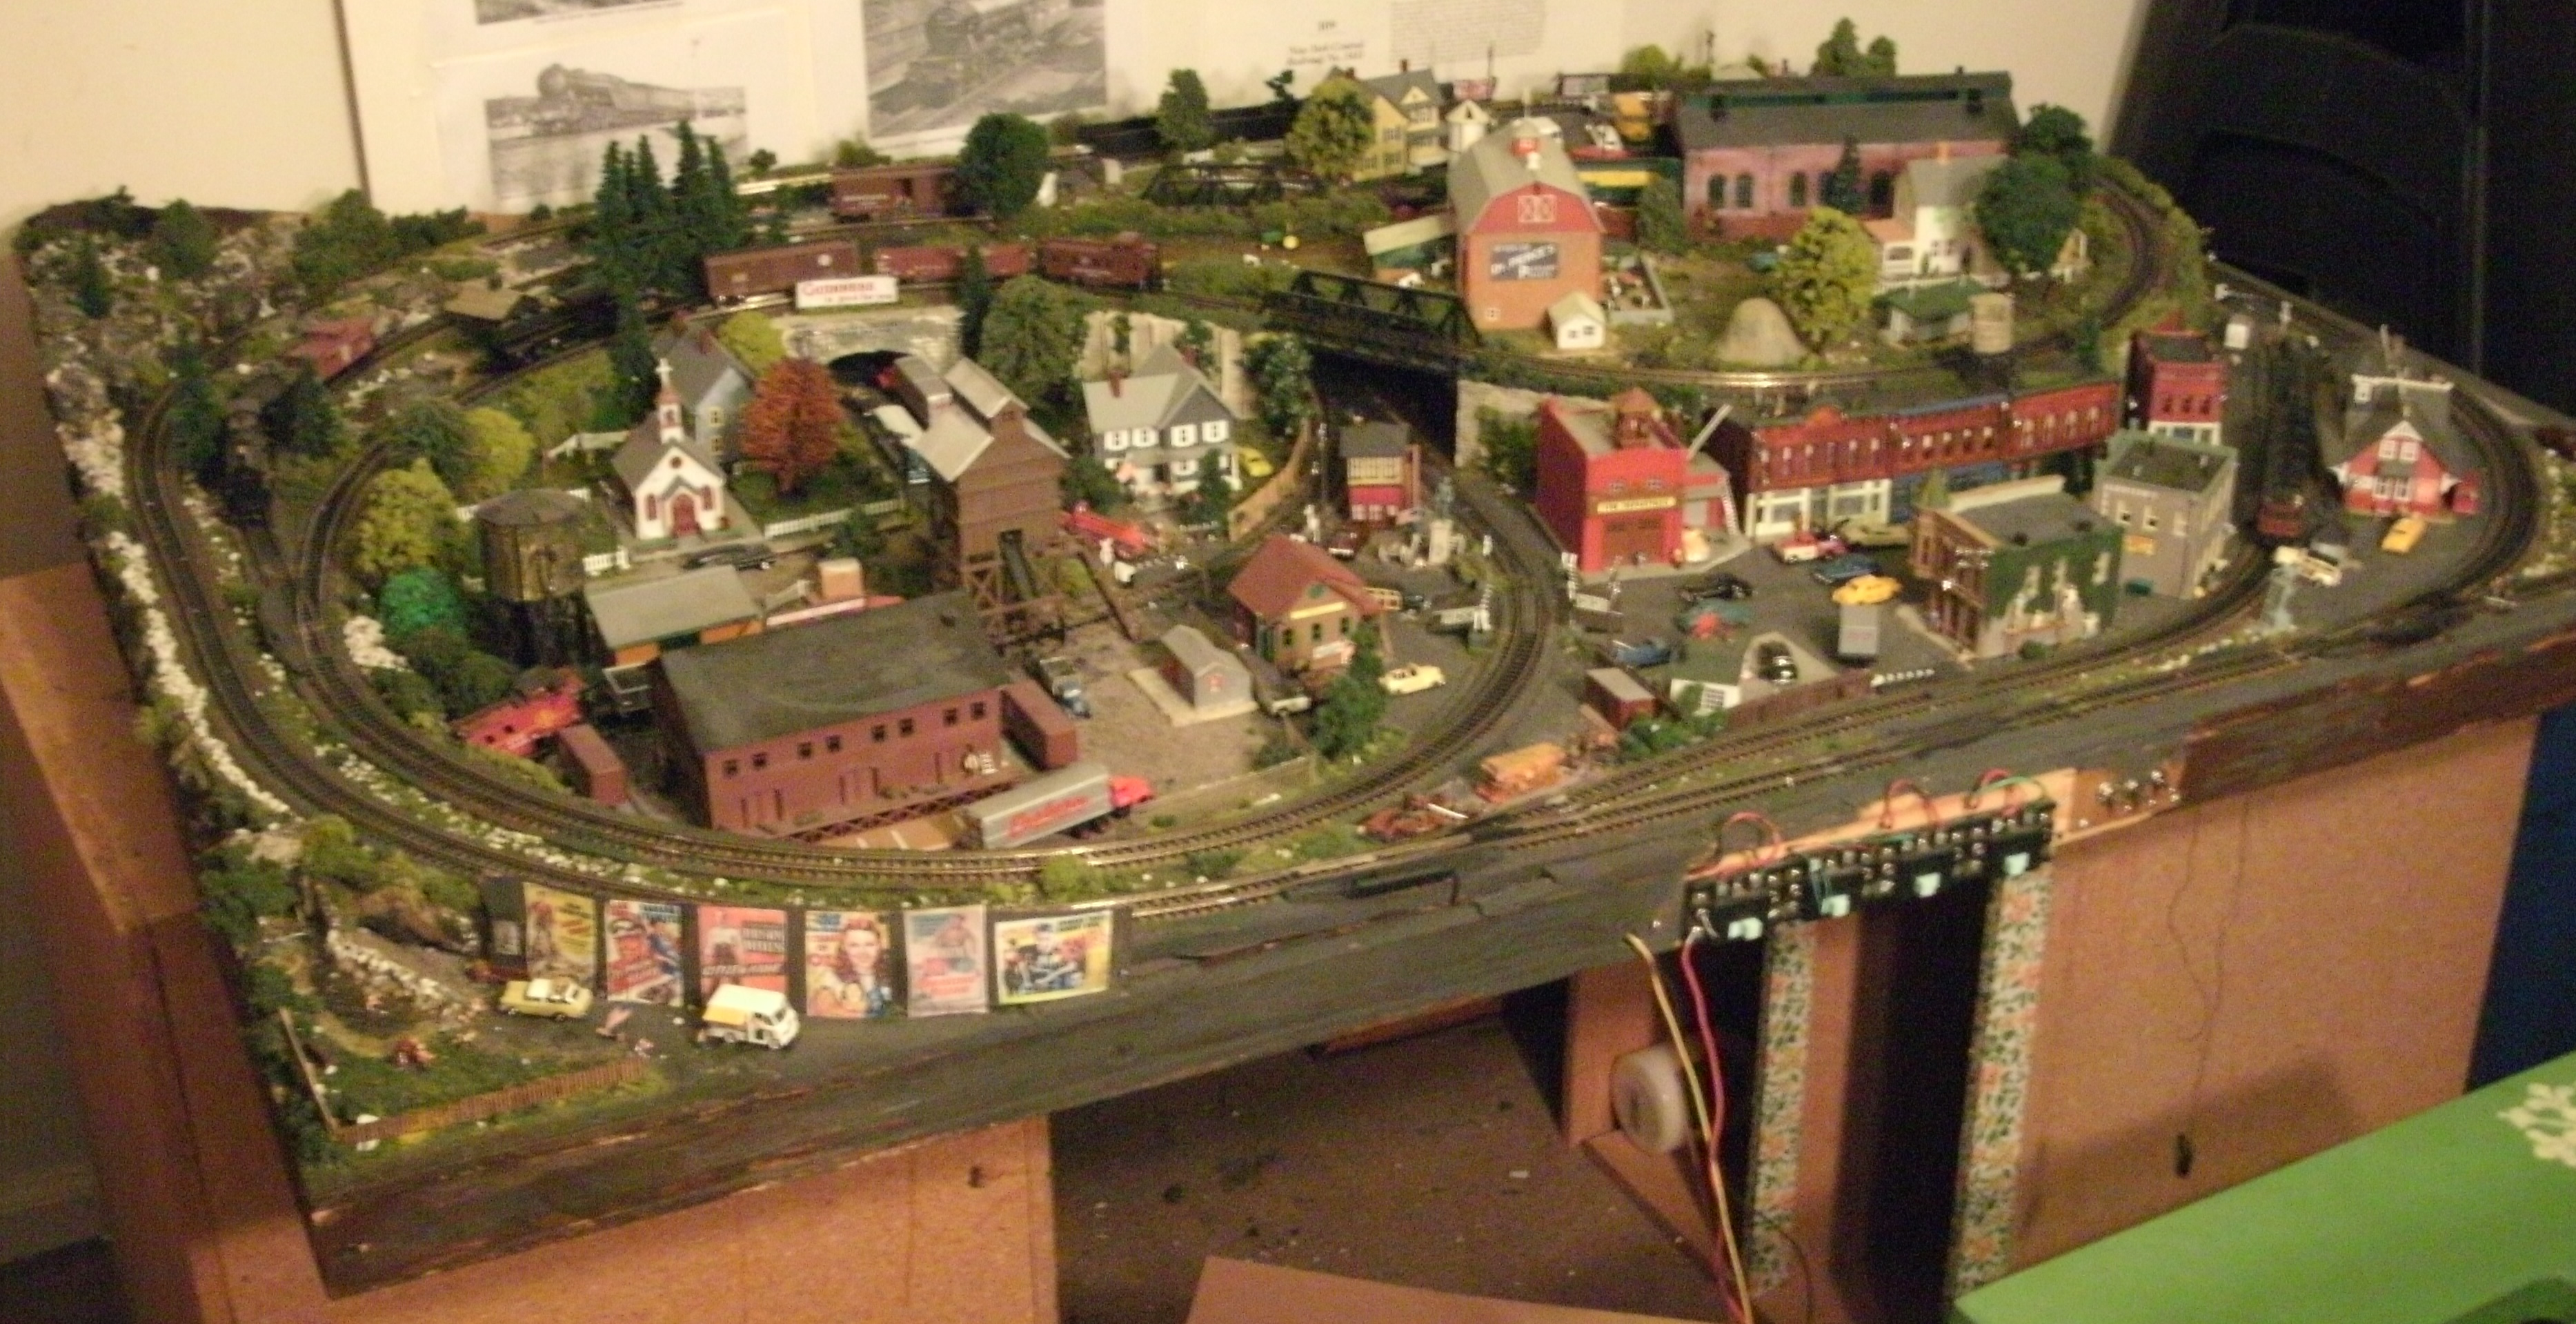 Geoff s layout model railway layouts plans - Ho scale layouts for small spaces concept ...